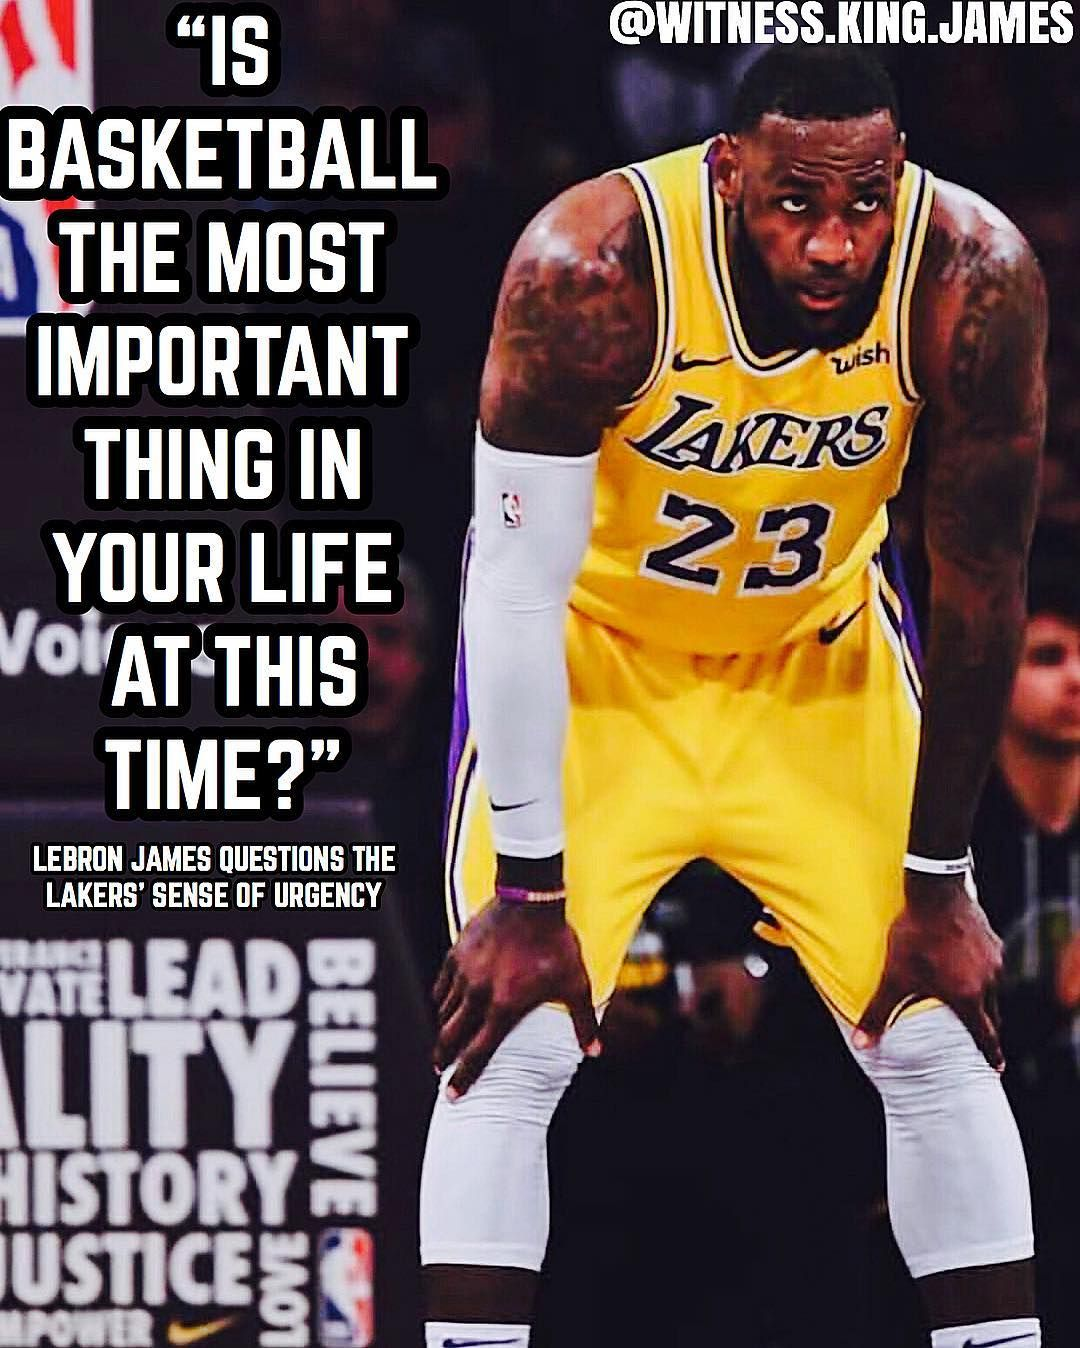 Are The Lakers Making The Playoffs At This Point Witnesskingjames Follow Witness King James For More Kingjam Lebron James La Lakers Lakers